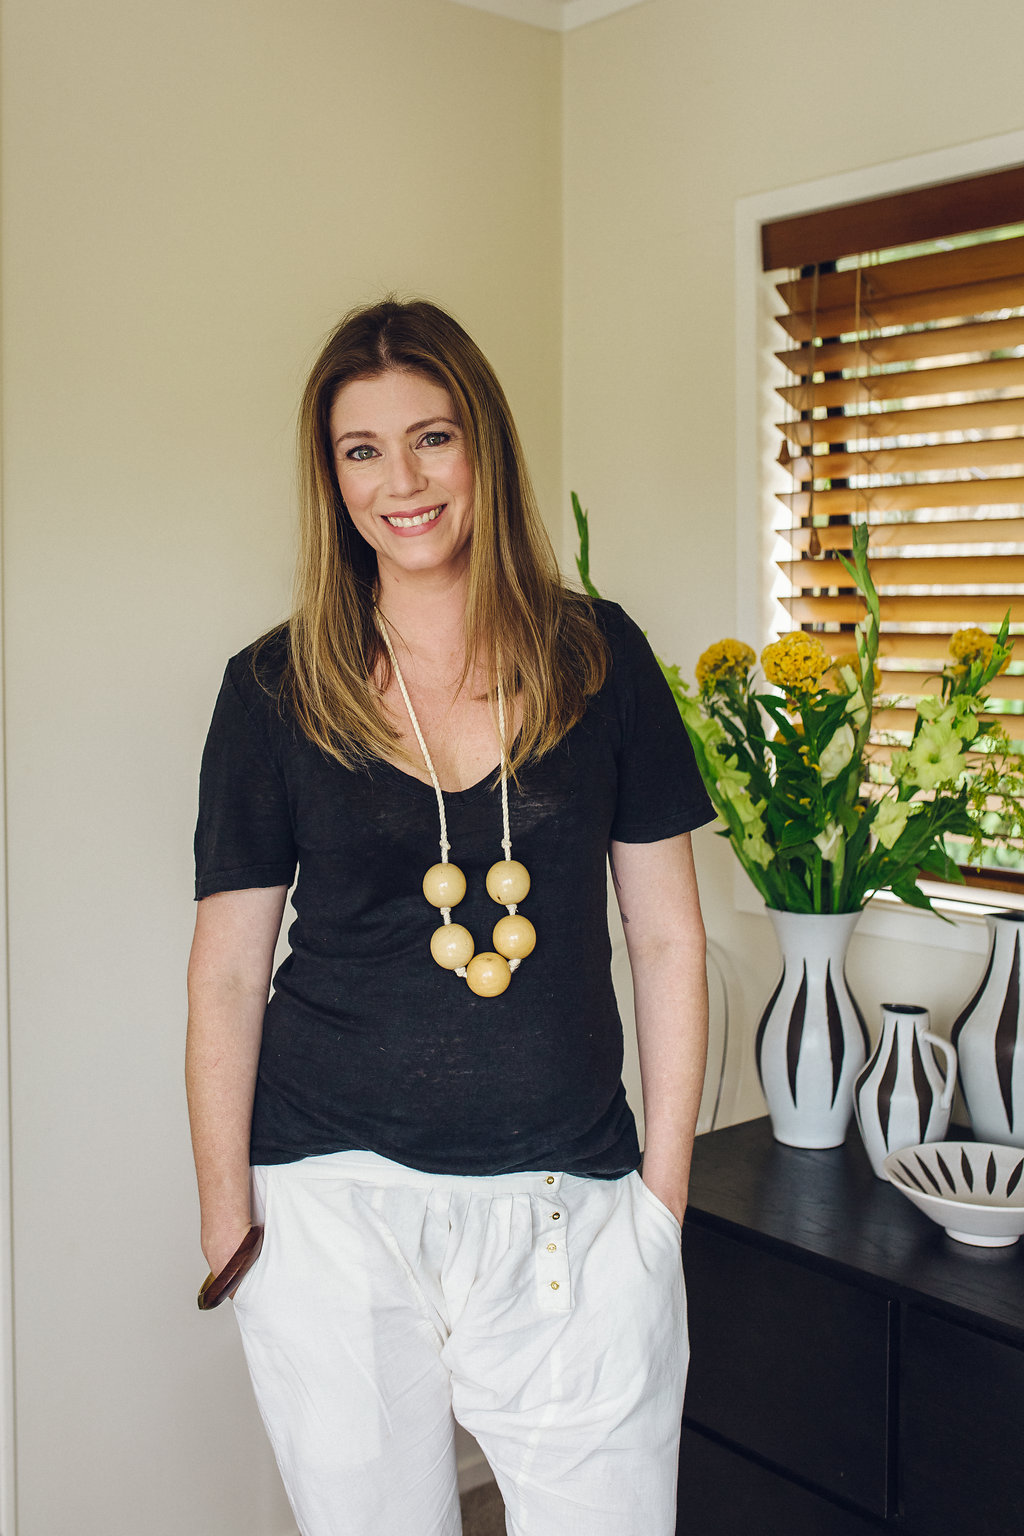 Williams at home where she juggles family and business